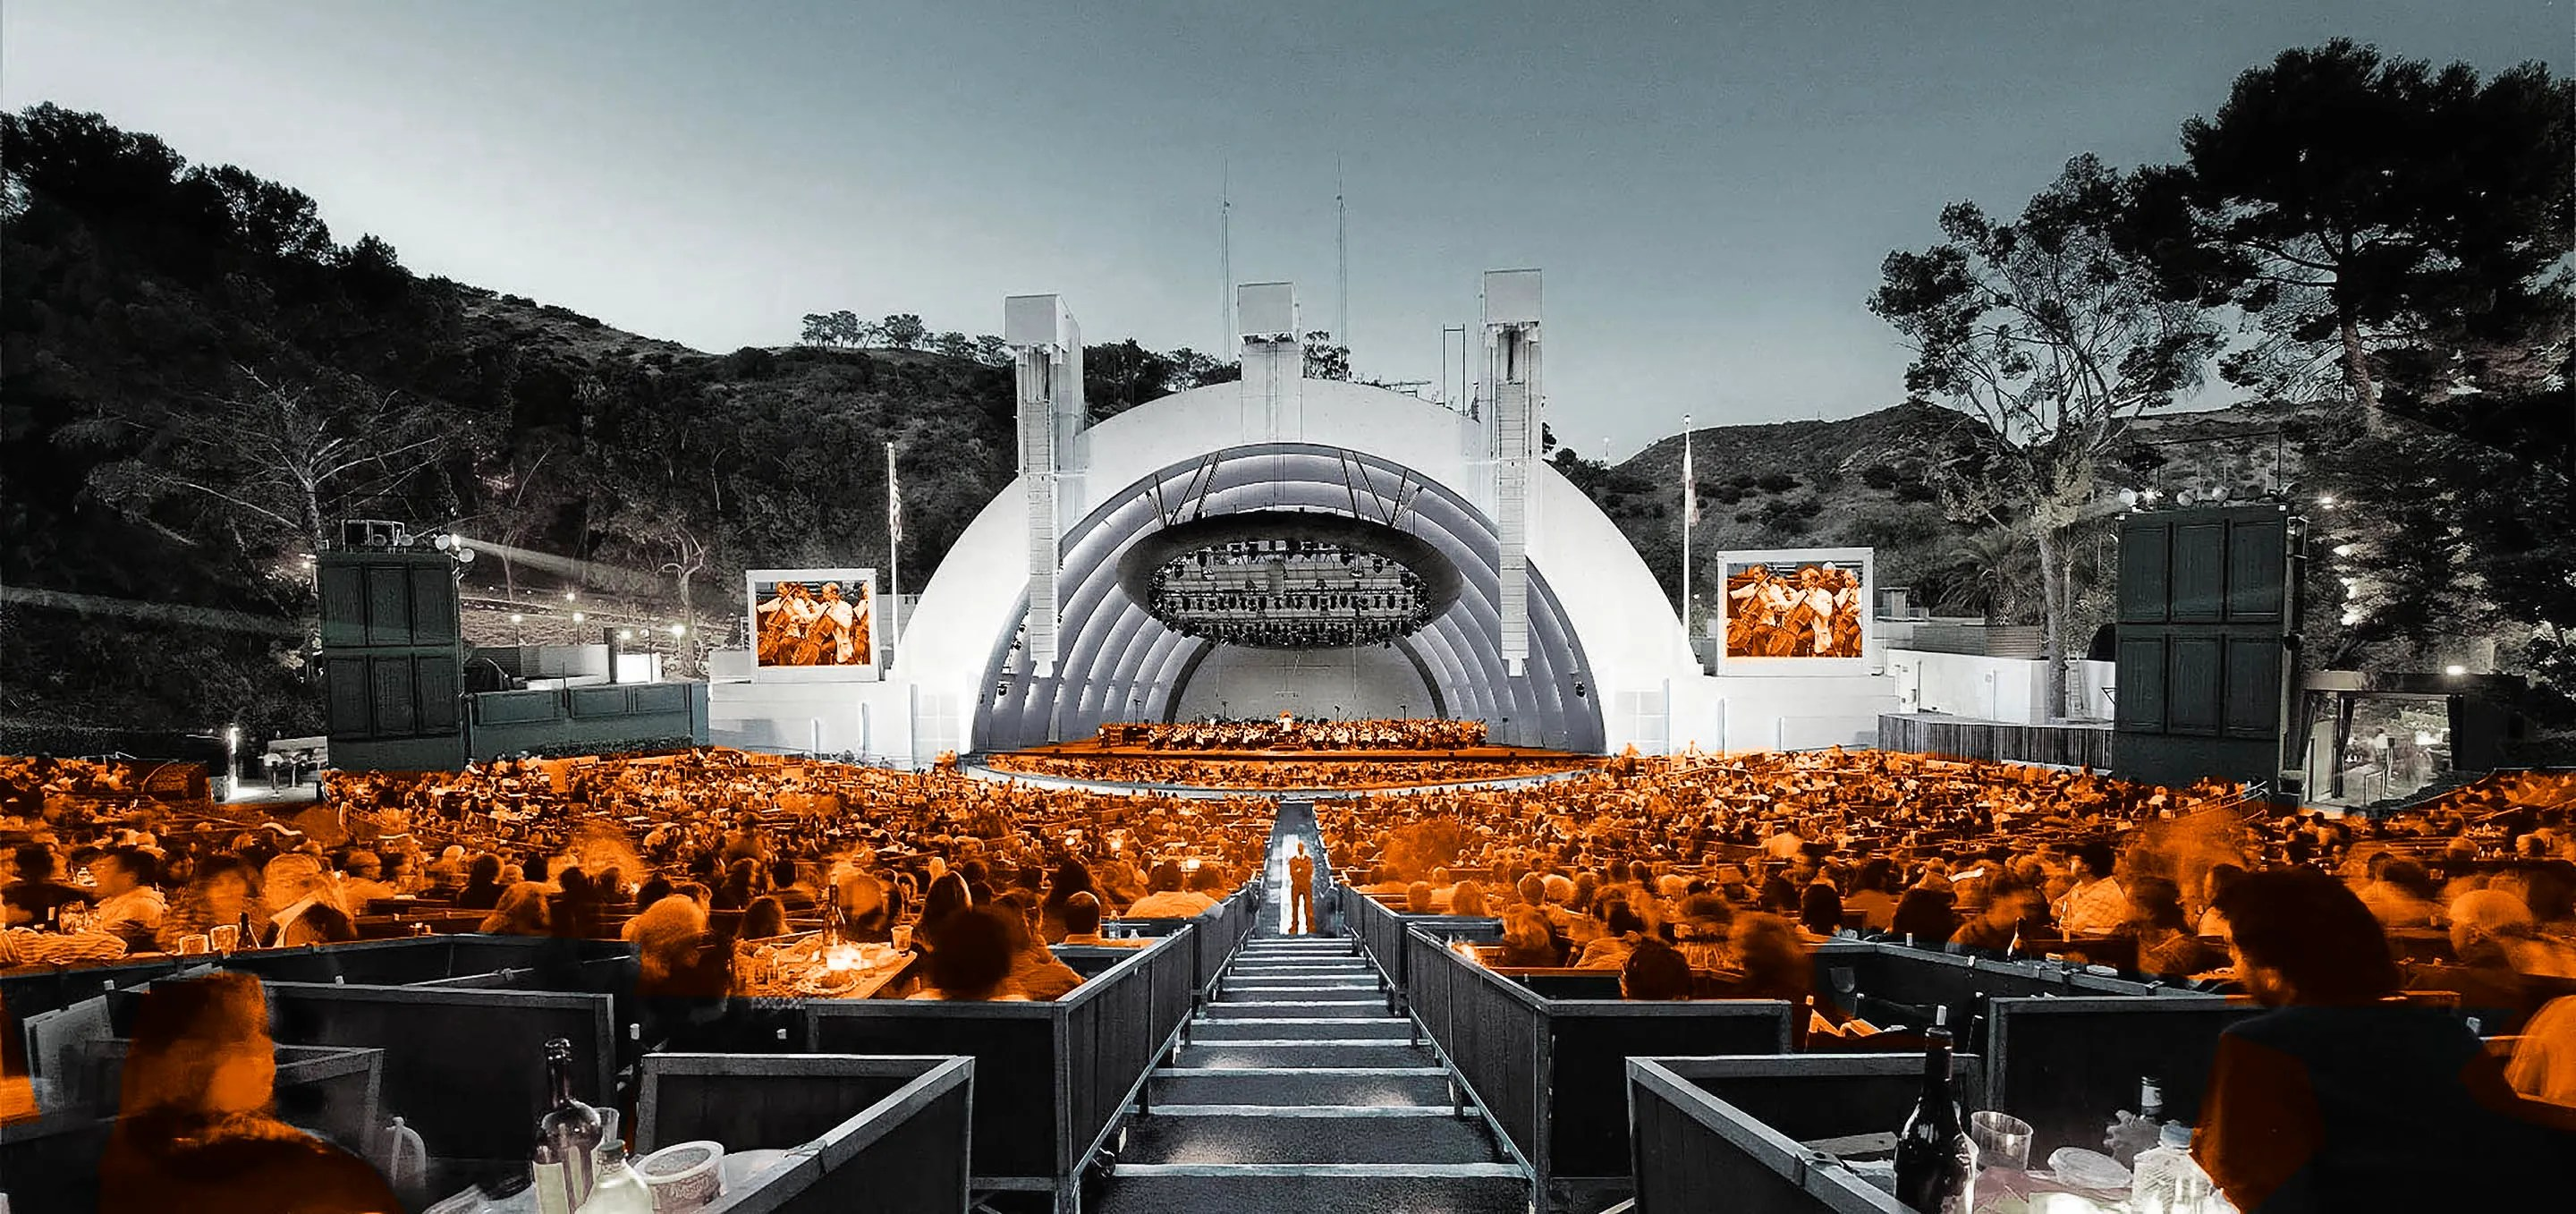 10 BEST MUSIC VENUES The legendary Hollywood Bowl, stands out for its acoustics, and is easily reached on foot from nearby Hollywood tourist sites.  HANDOUT Credit: Hollywoodbowl.com  Social Media Use OK  10 Best Music Venues for 10/10 - LA   [Via MerlinFTP Drop]